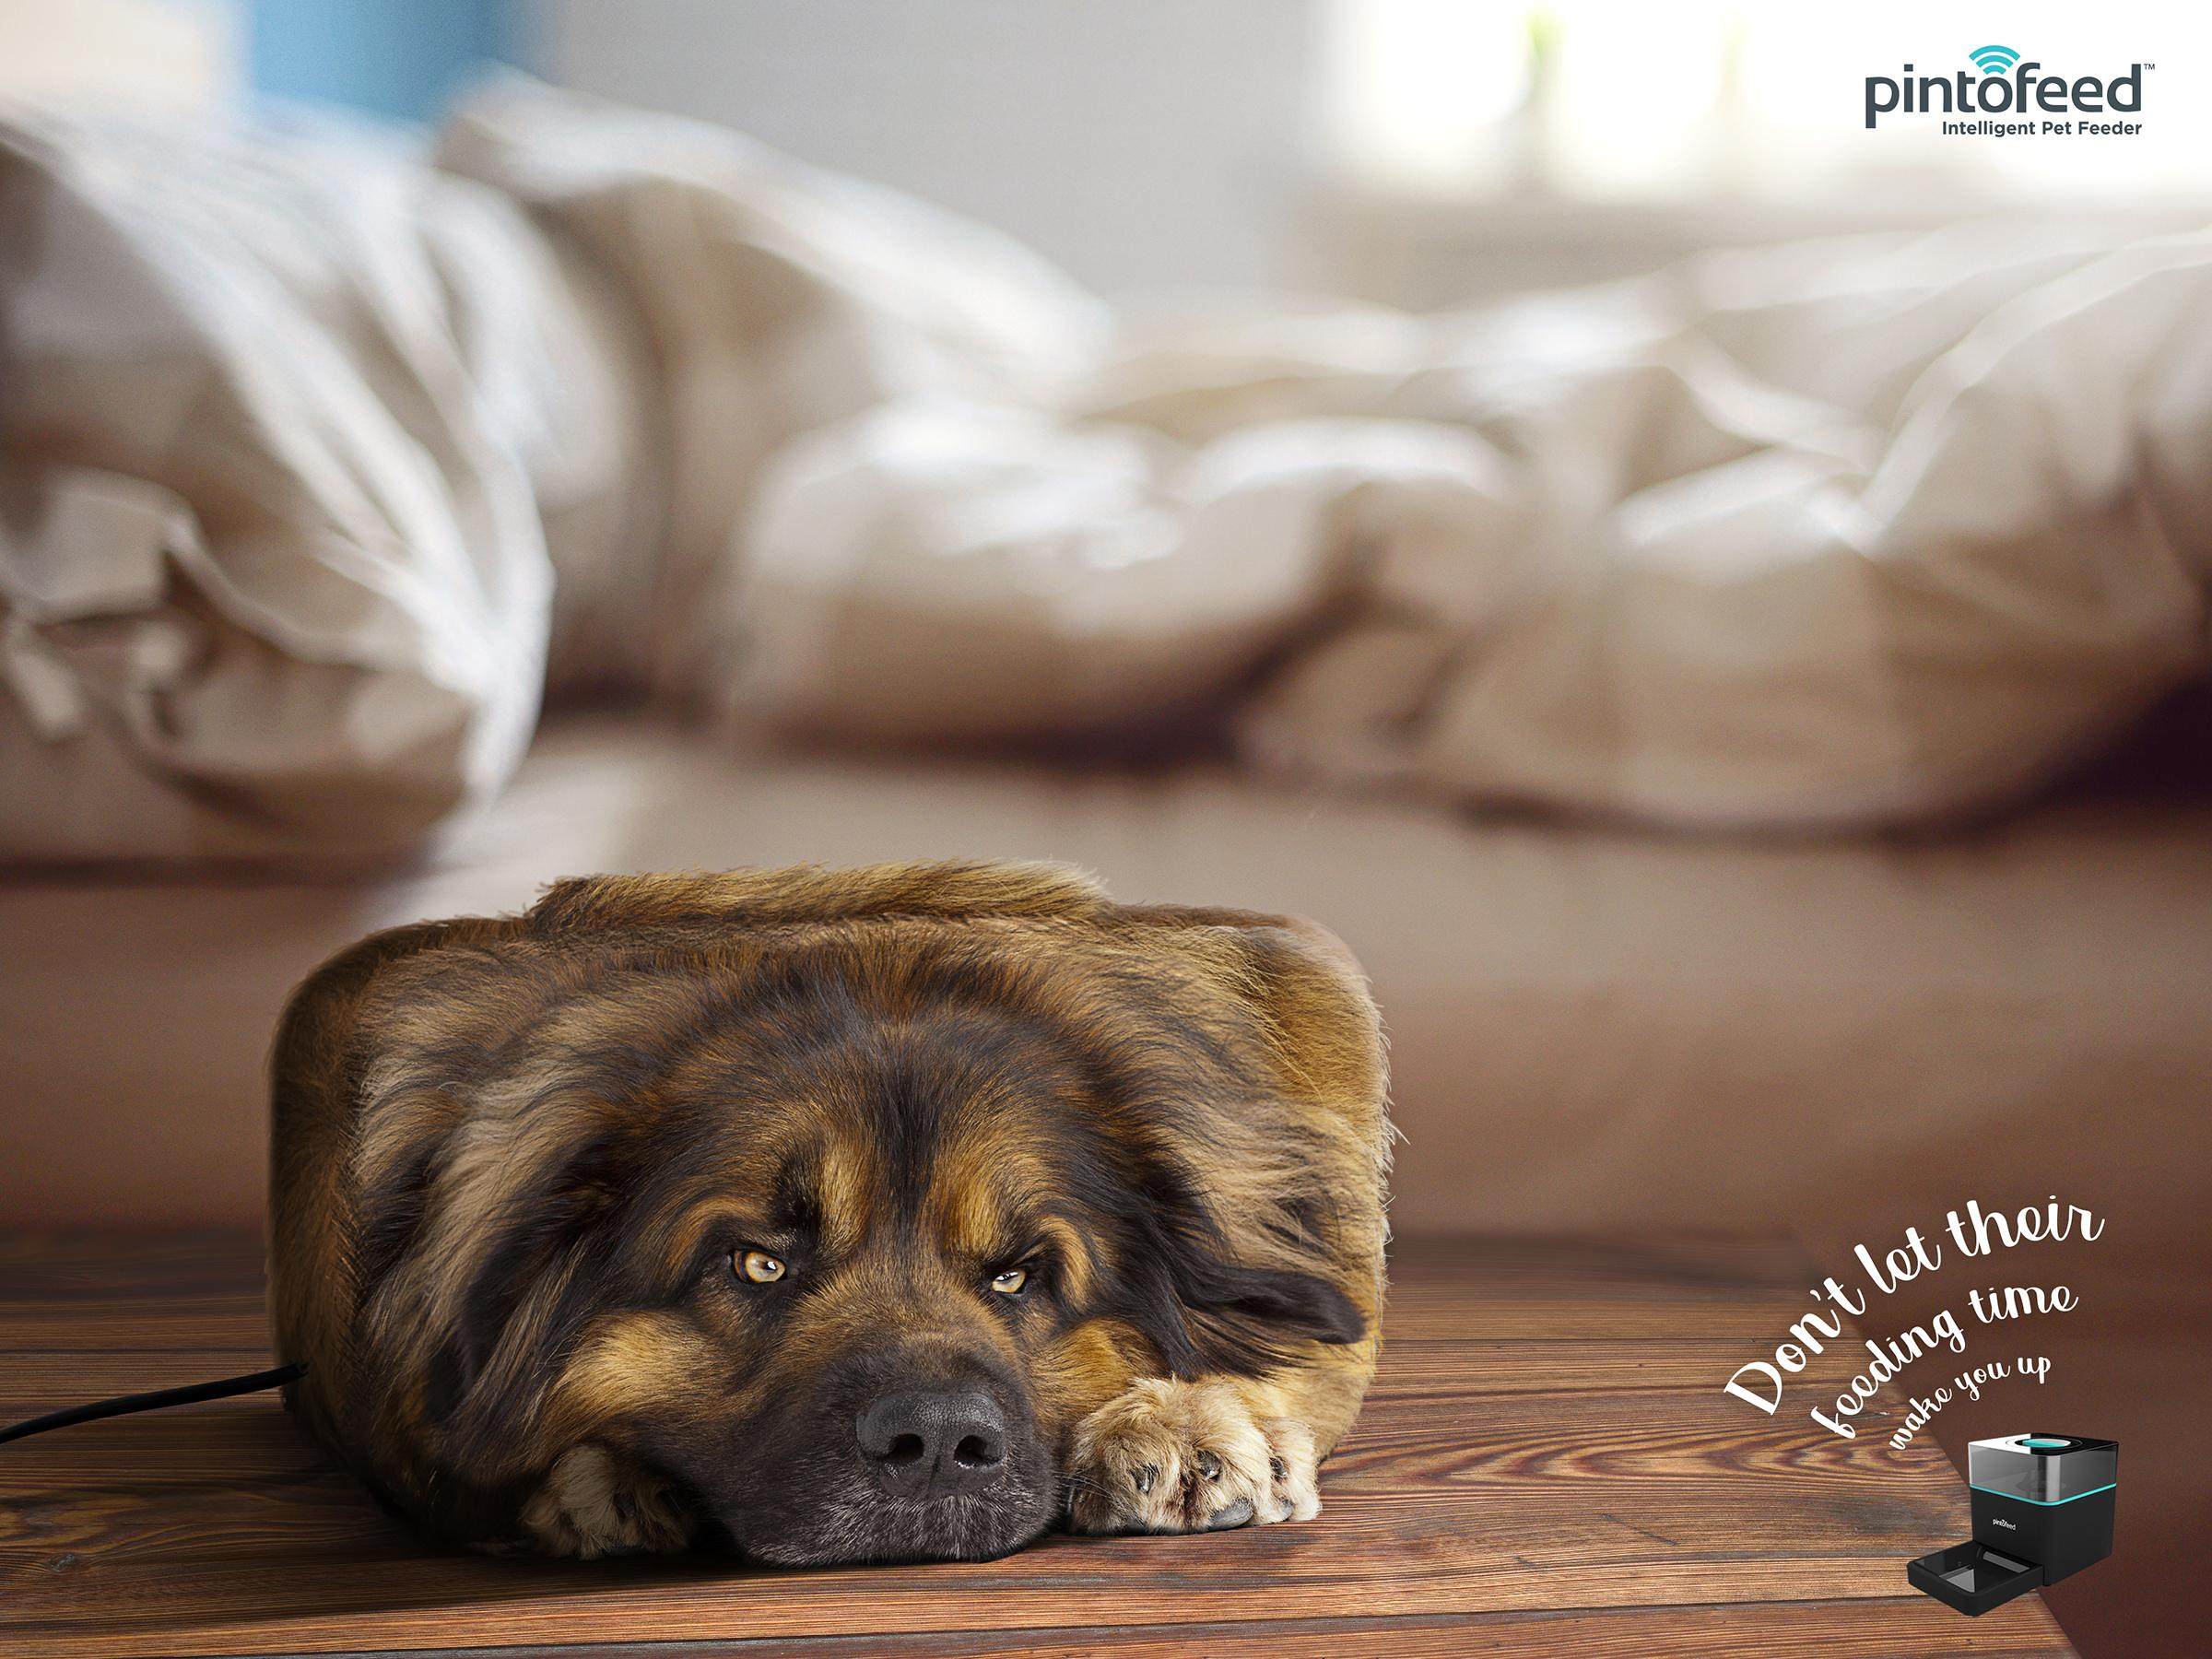 Pintofeed Print Ad - Animal Clock - Dog